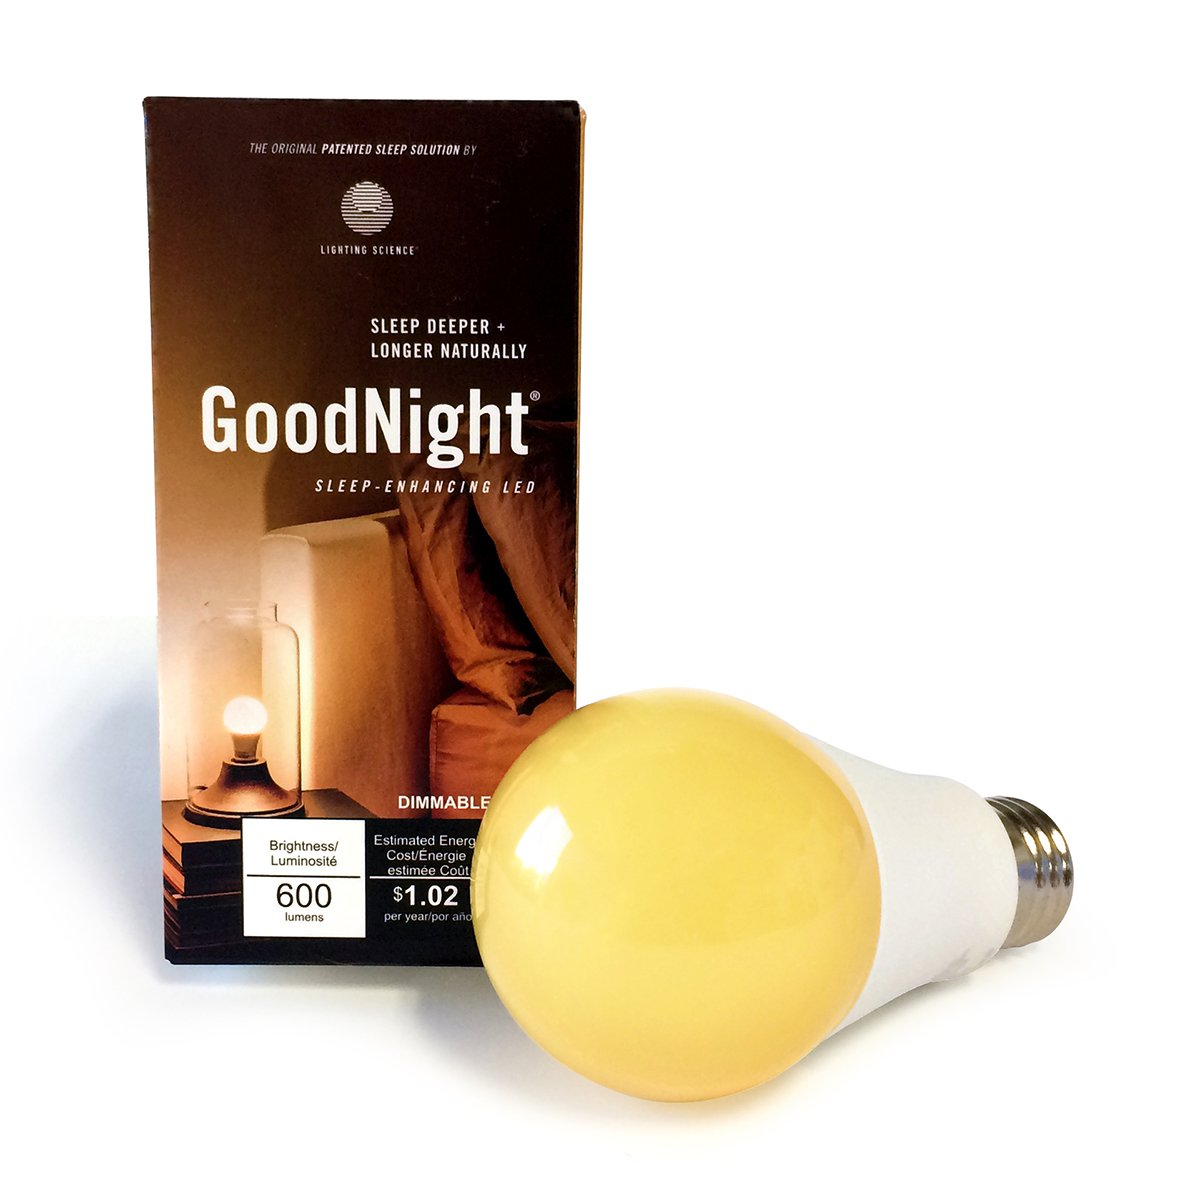 Lighting Science FG-02263 Goodnight Sleep Bulb